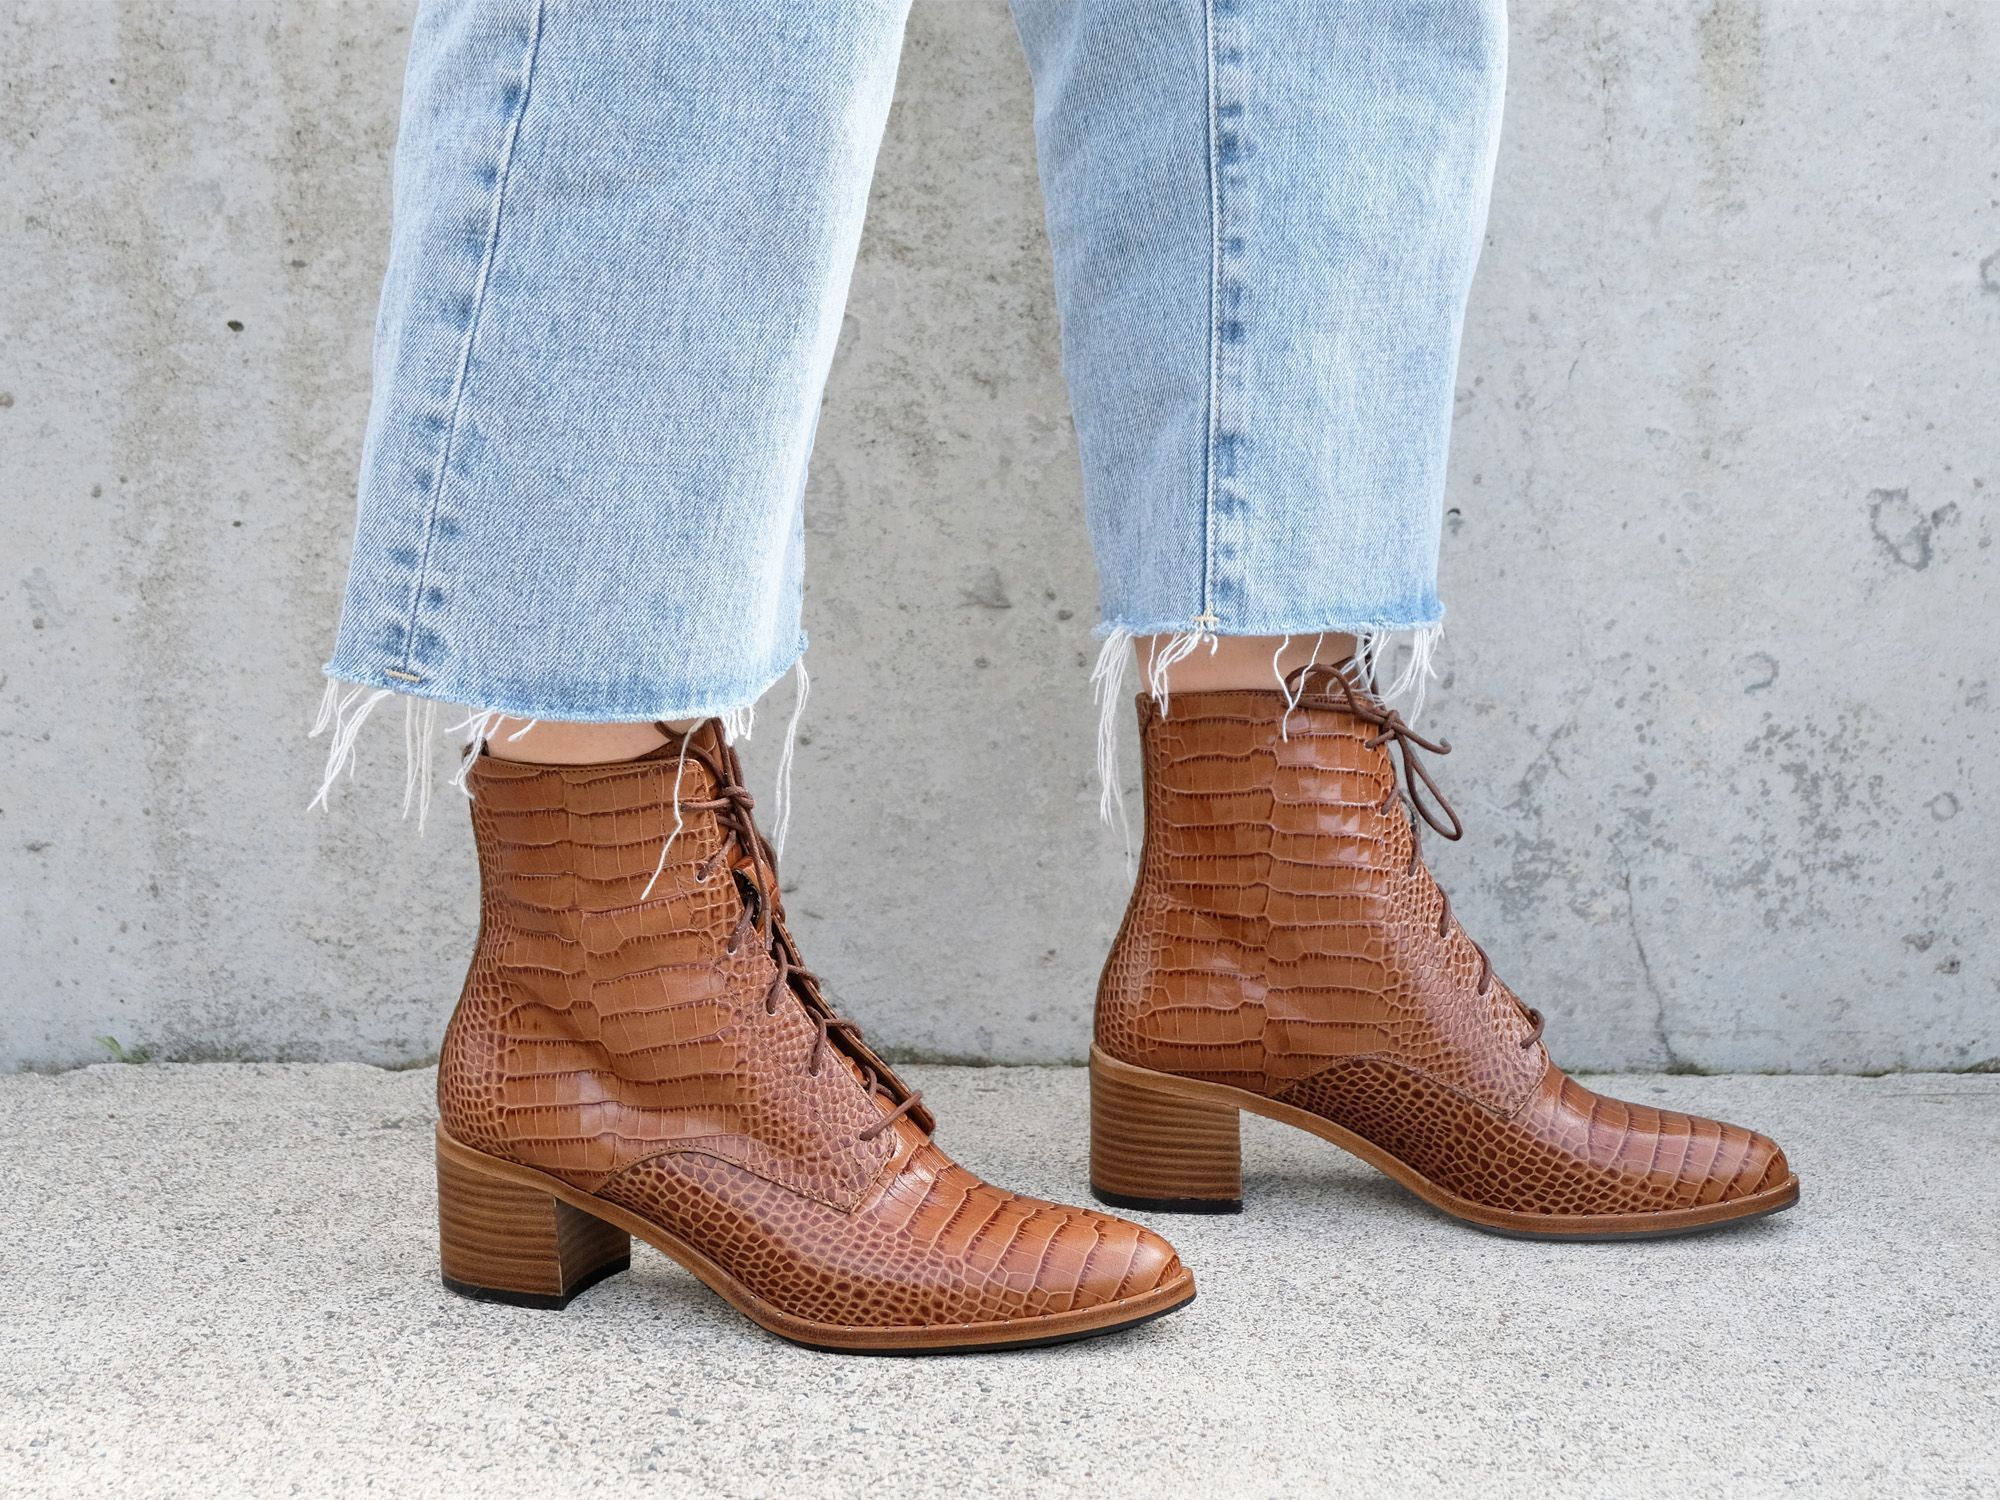 ACE Lace Up Boot – FREDA SALVADOR